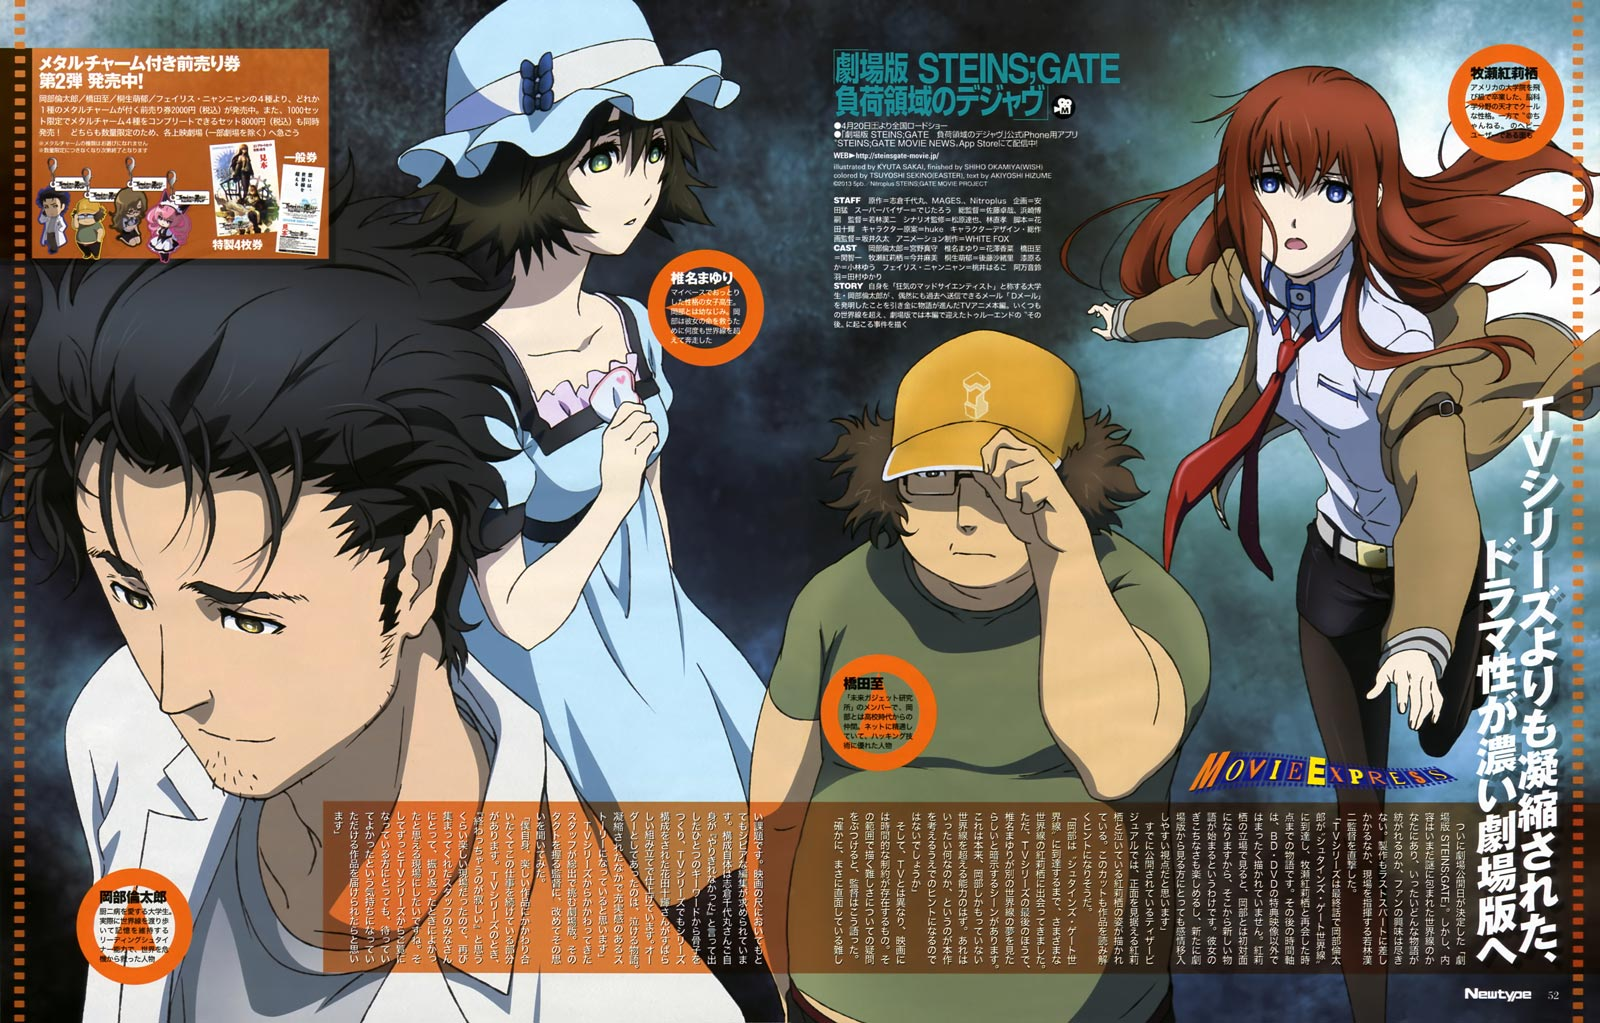 New Steins;Gate Movie and Blu-RayDVD Art pic 3